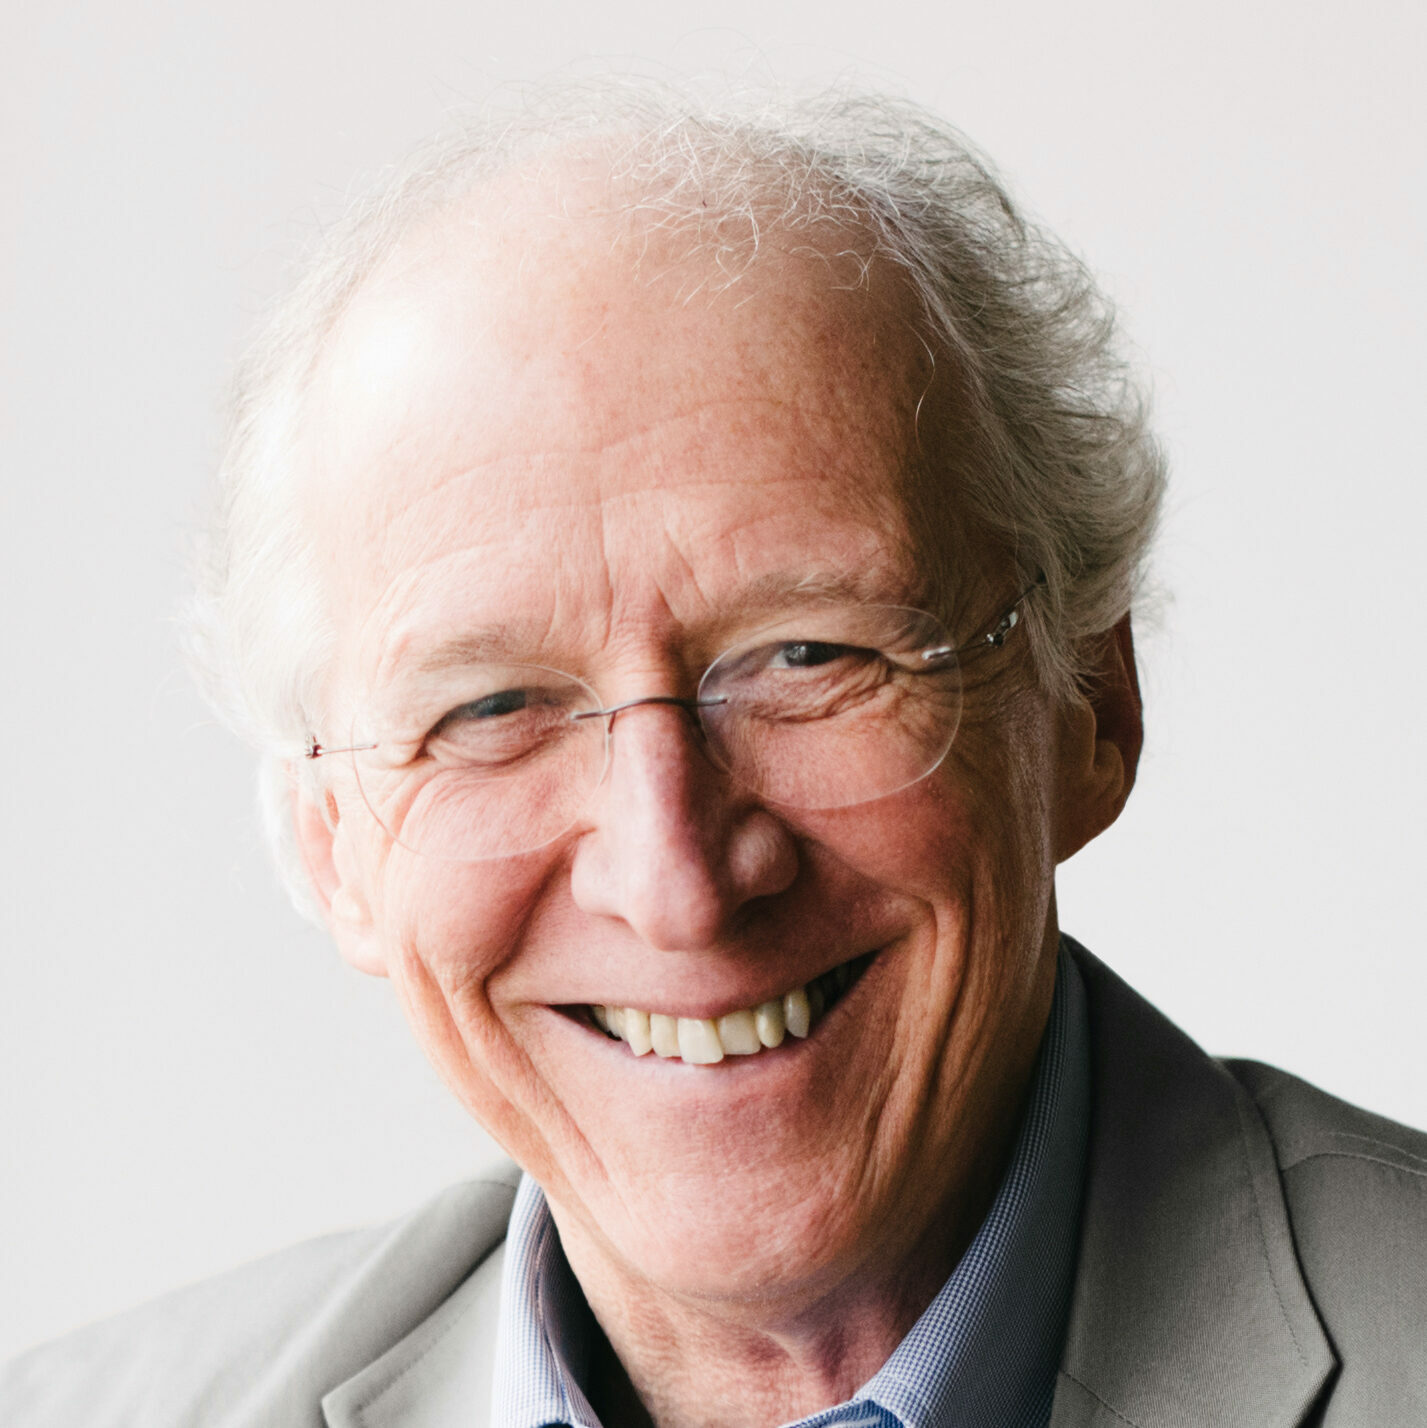 John Piper_headshot NEW - USE THIS ONE